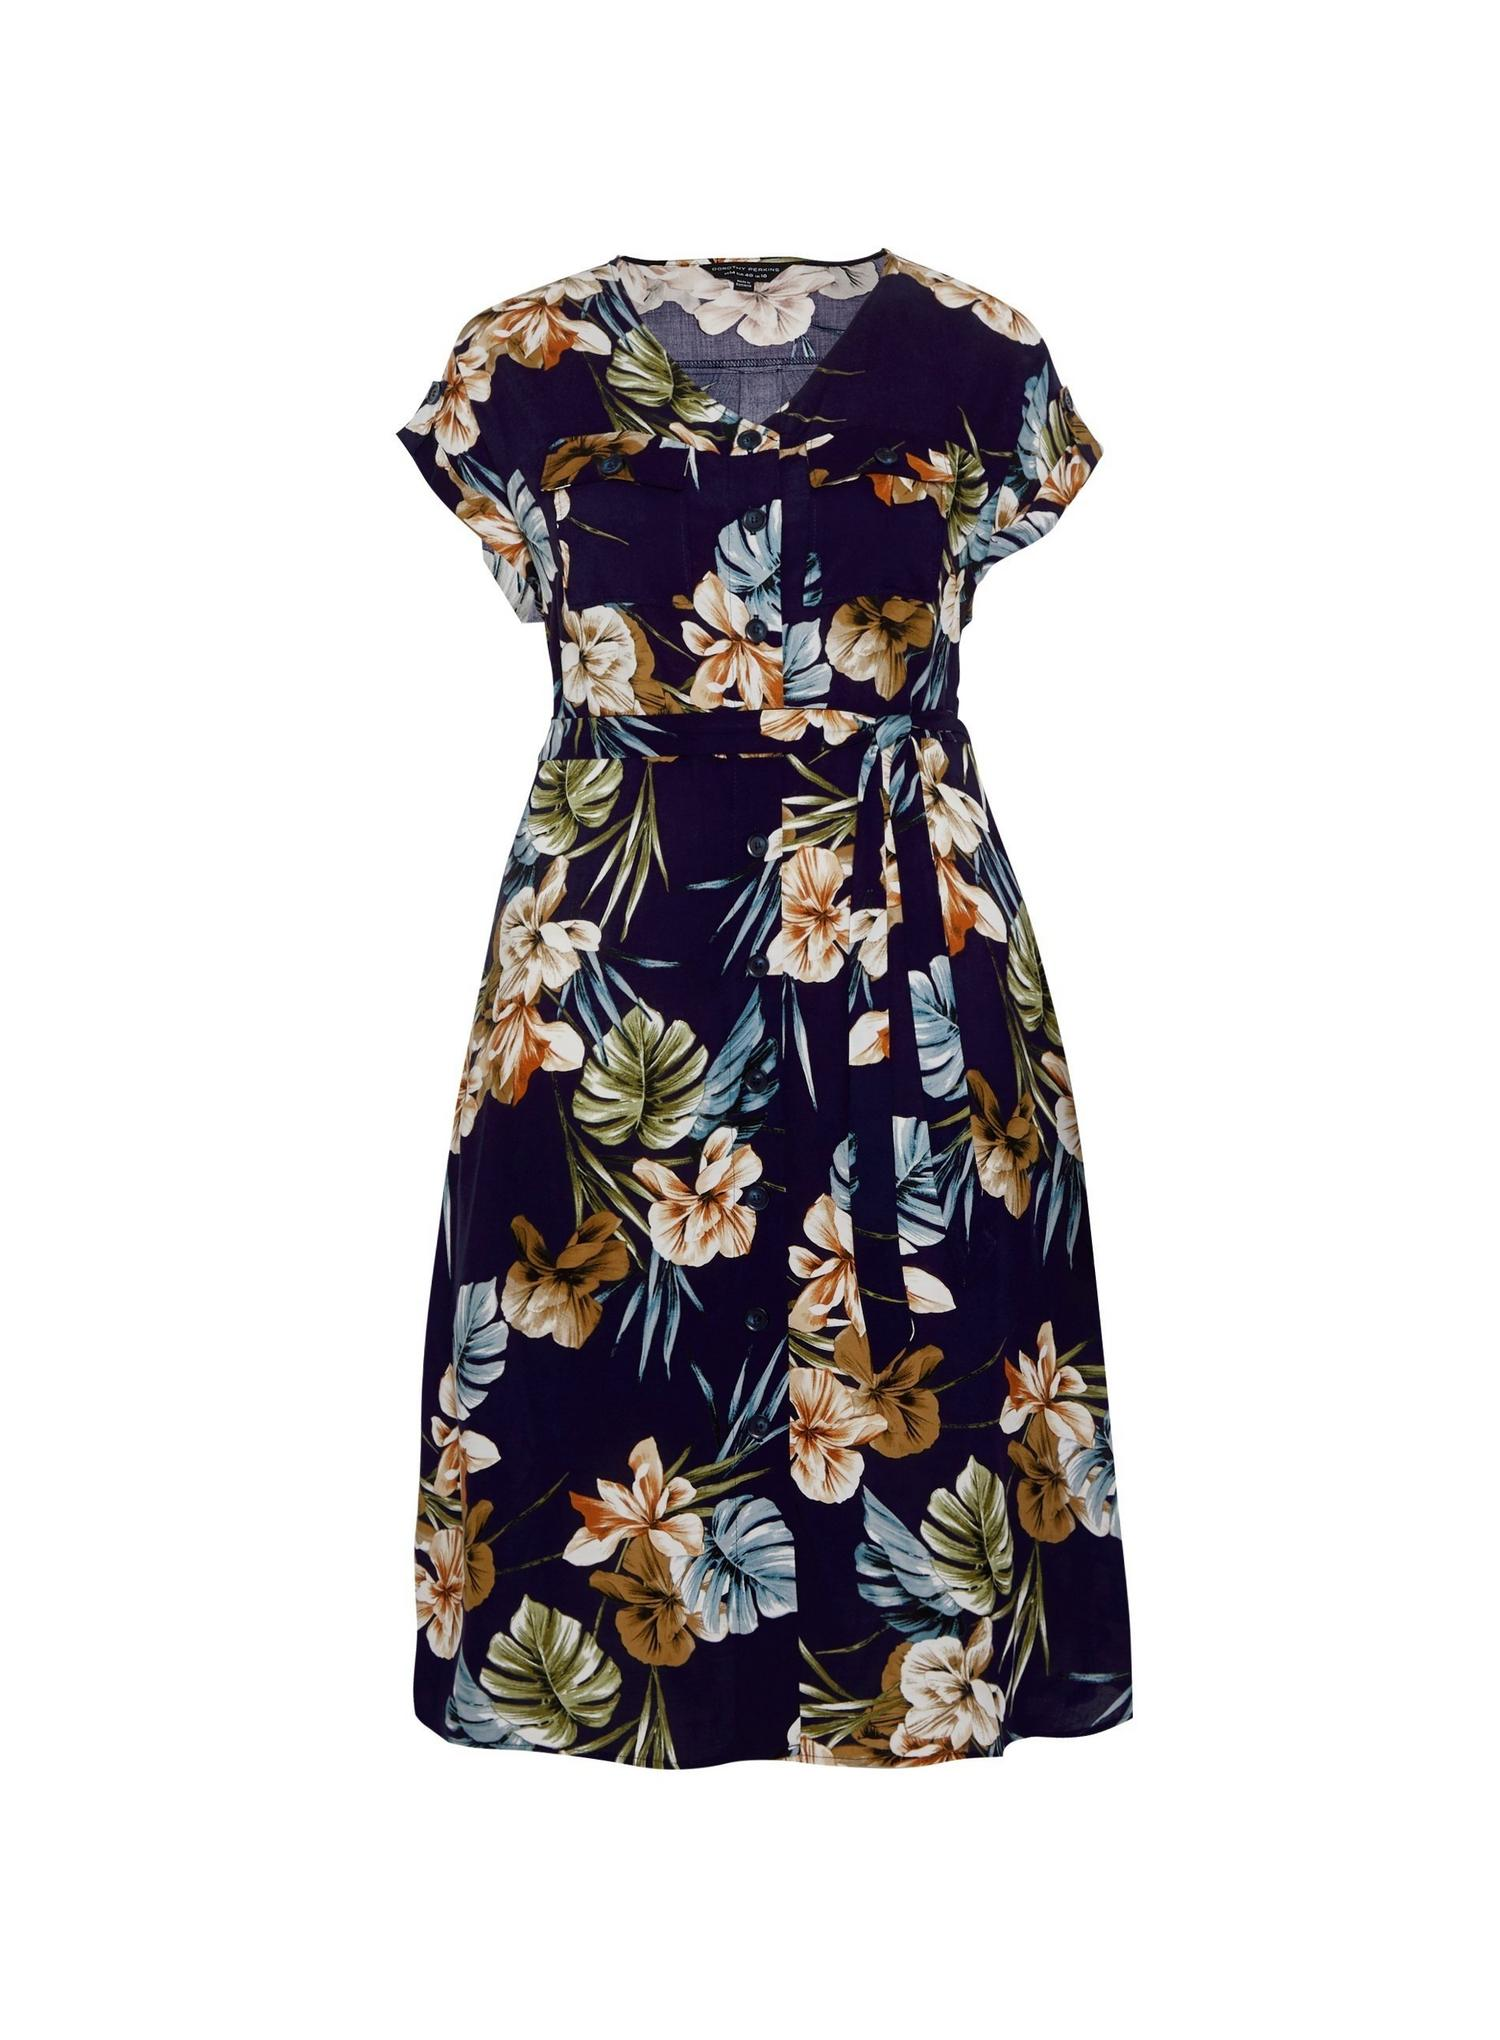 148 Curve Navy Floral Print Dress image number 4